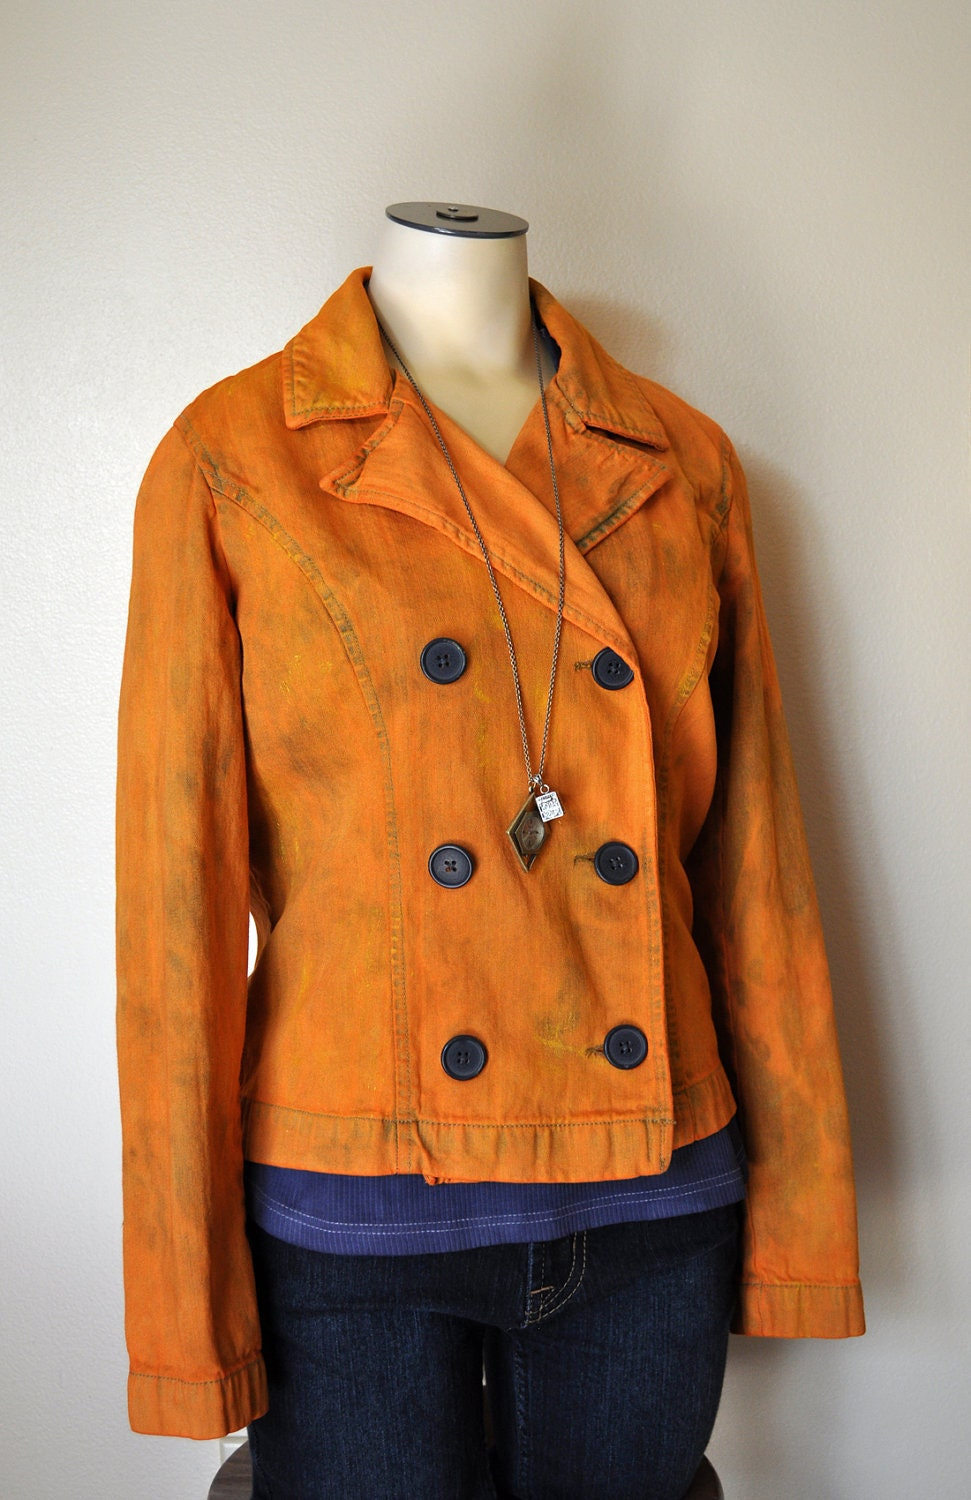 3a70e6016 Orange Small Denim JACKET - Pumpkin Orange Hand Dyed Upcycled French Cuff  Double Breasted Denim Jacket - Adult Womens Small (36